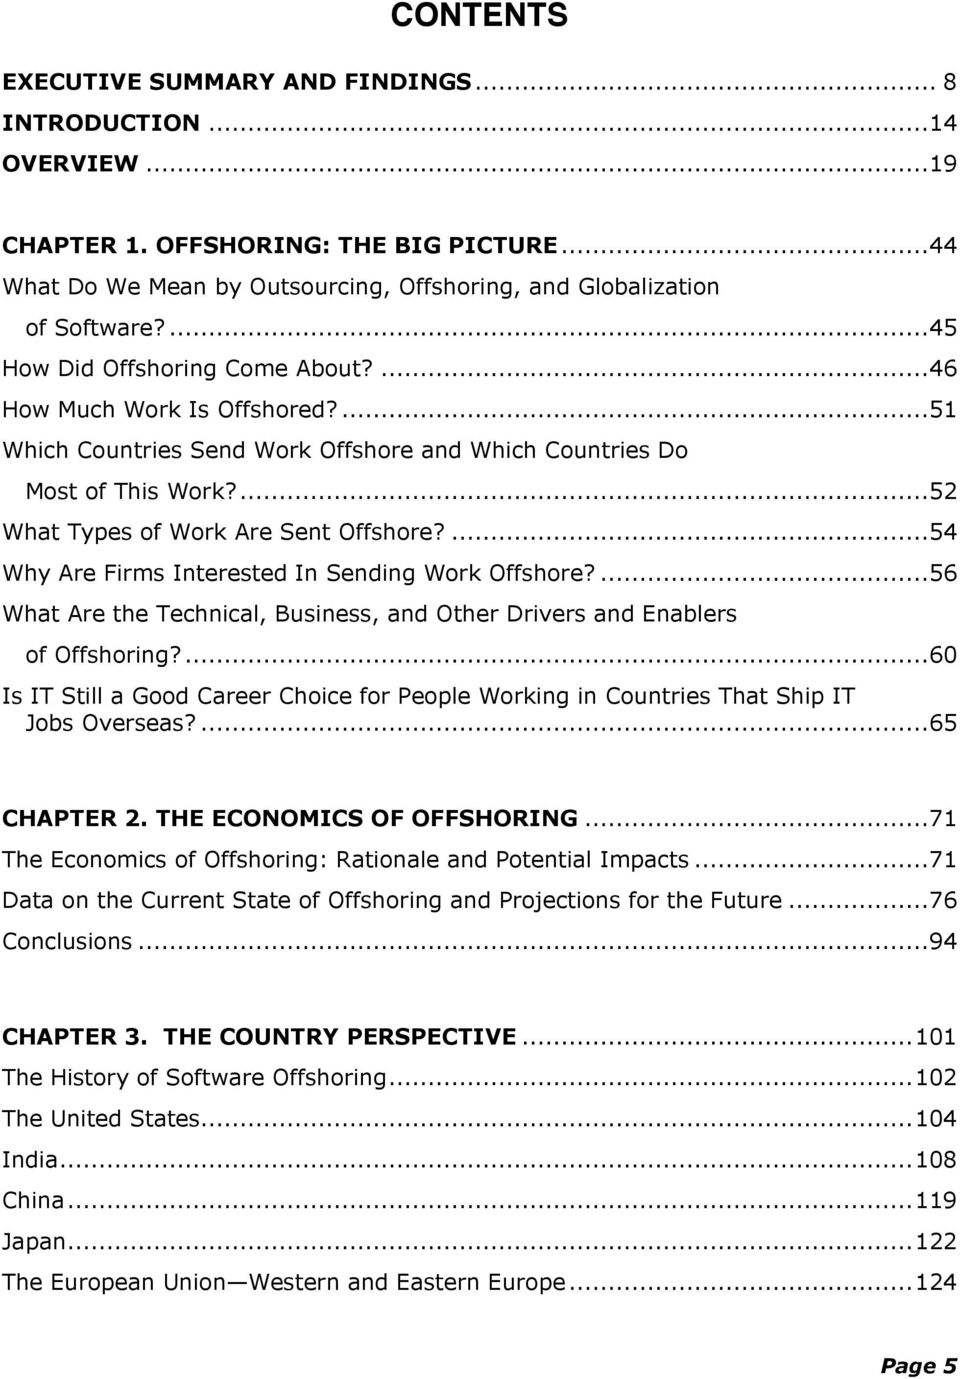 ...54 Why Are Firms Interested In Sending Work Offshore?...56 What Are the Technical, Business, and Other Drivers and Enablers of Offshoring?